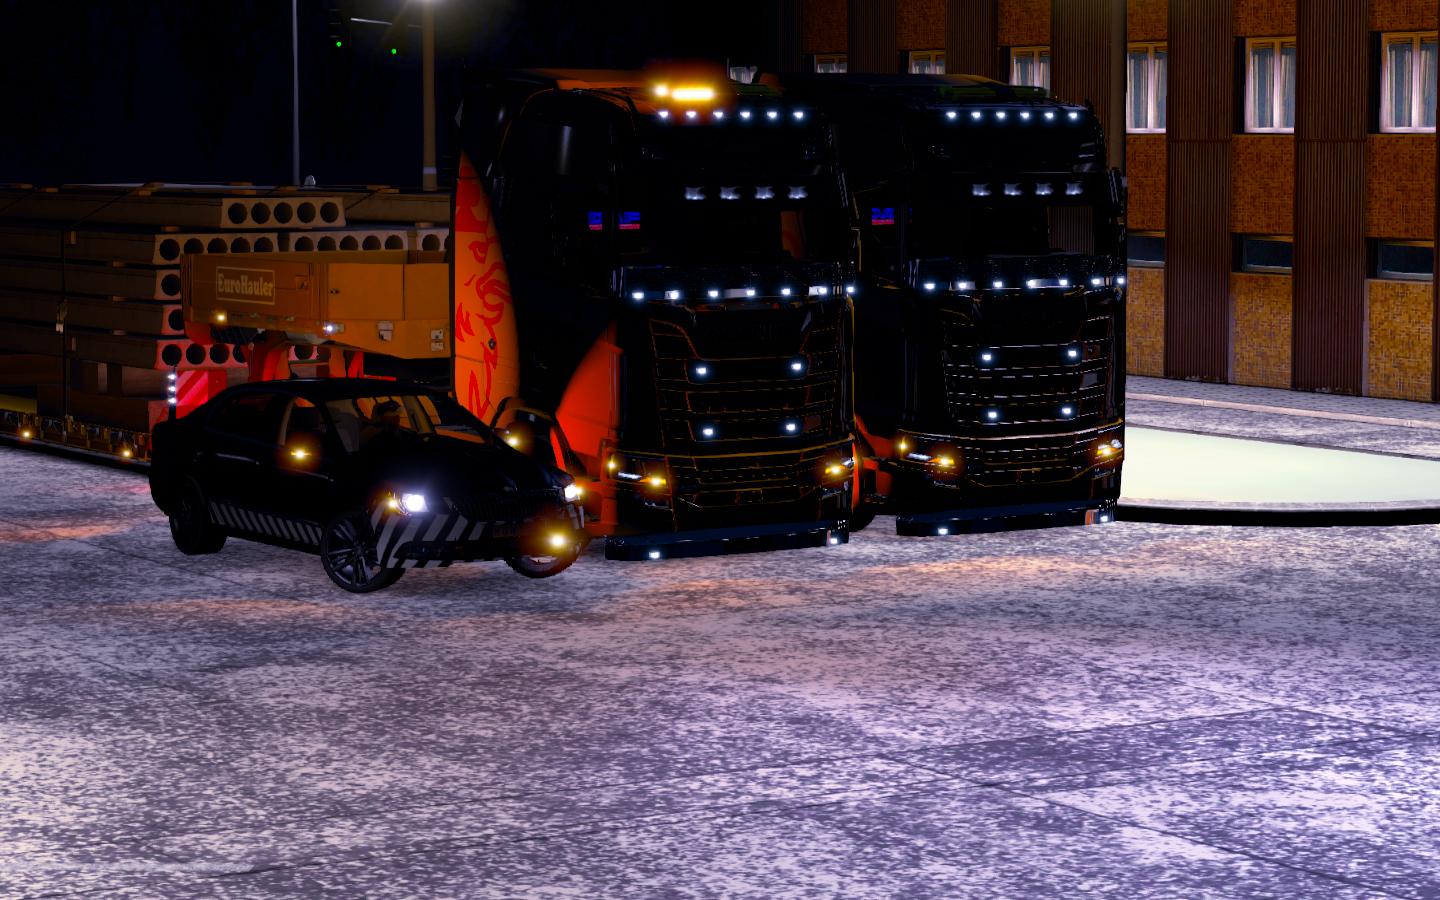 ets2_20190108_214340_00.png